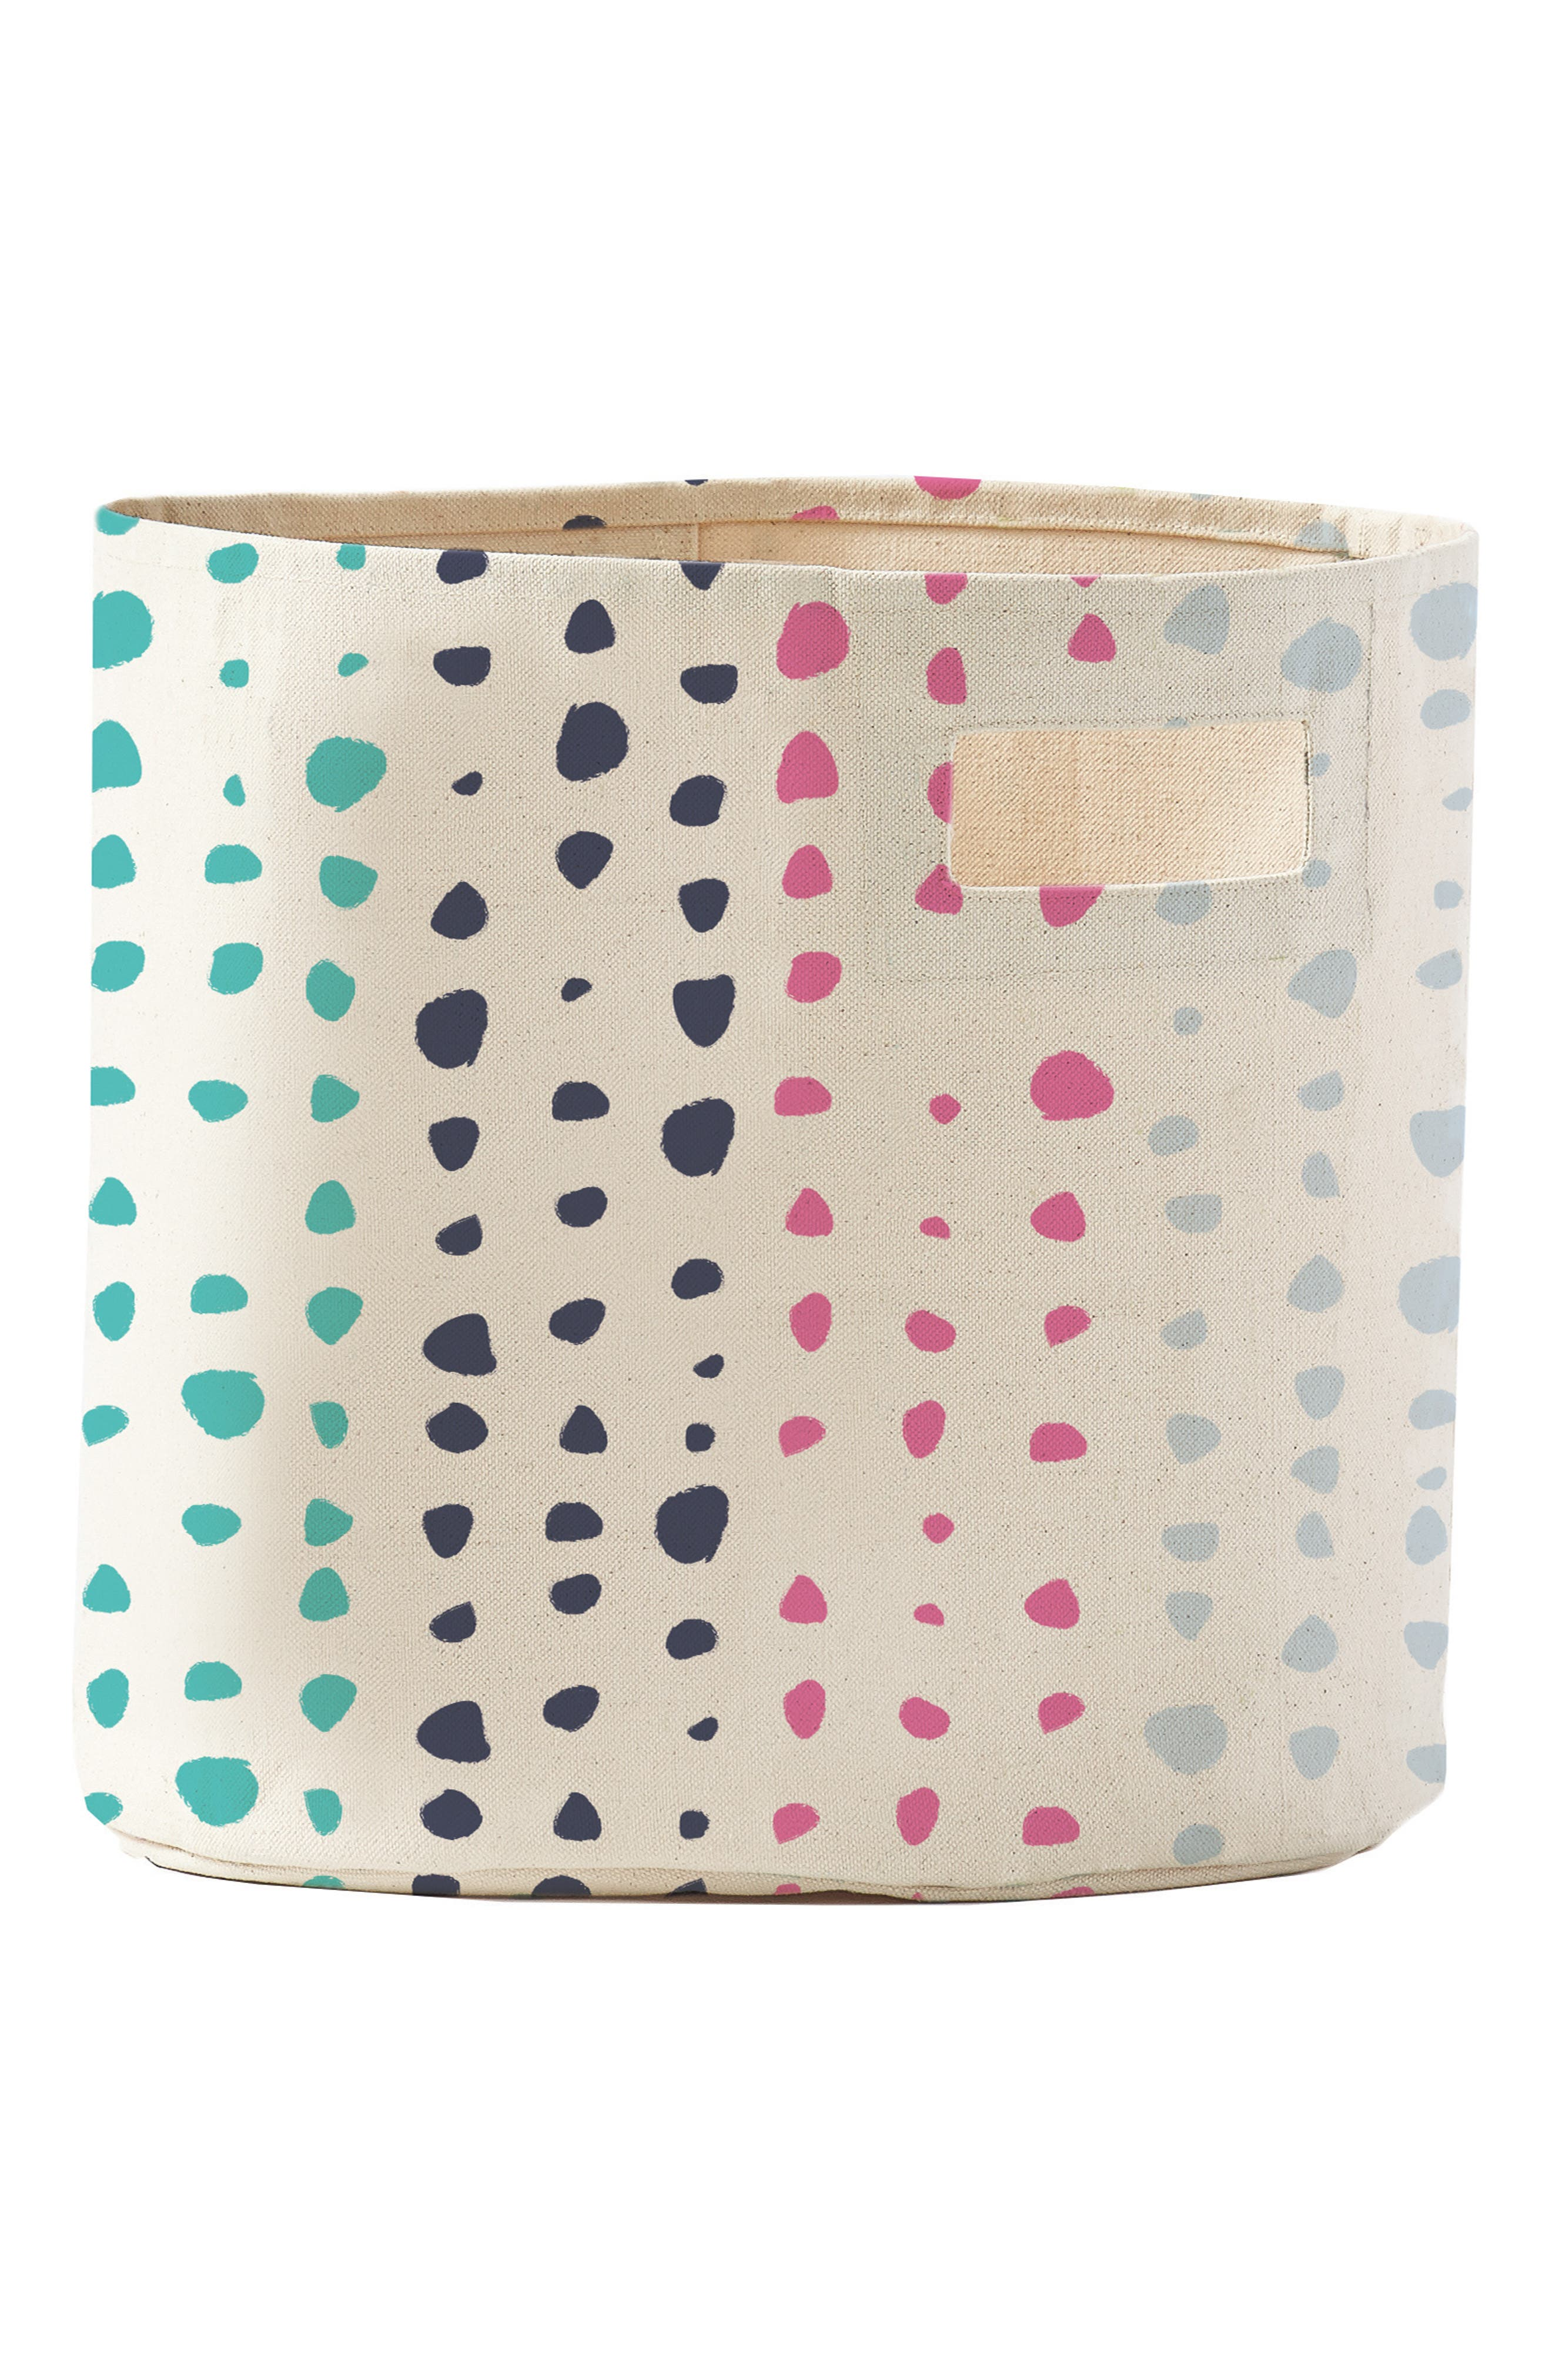 Painted Dots Changing Pad Cover, Swaddle & Bin Set,                             Alternate thumbnail 2, color,                             Multi